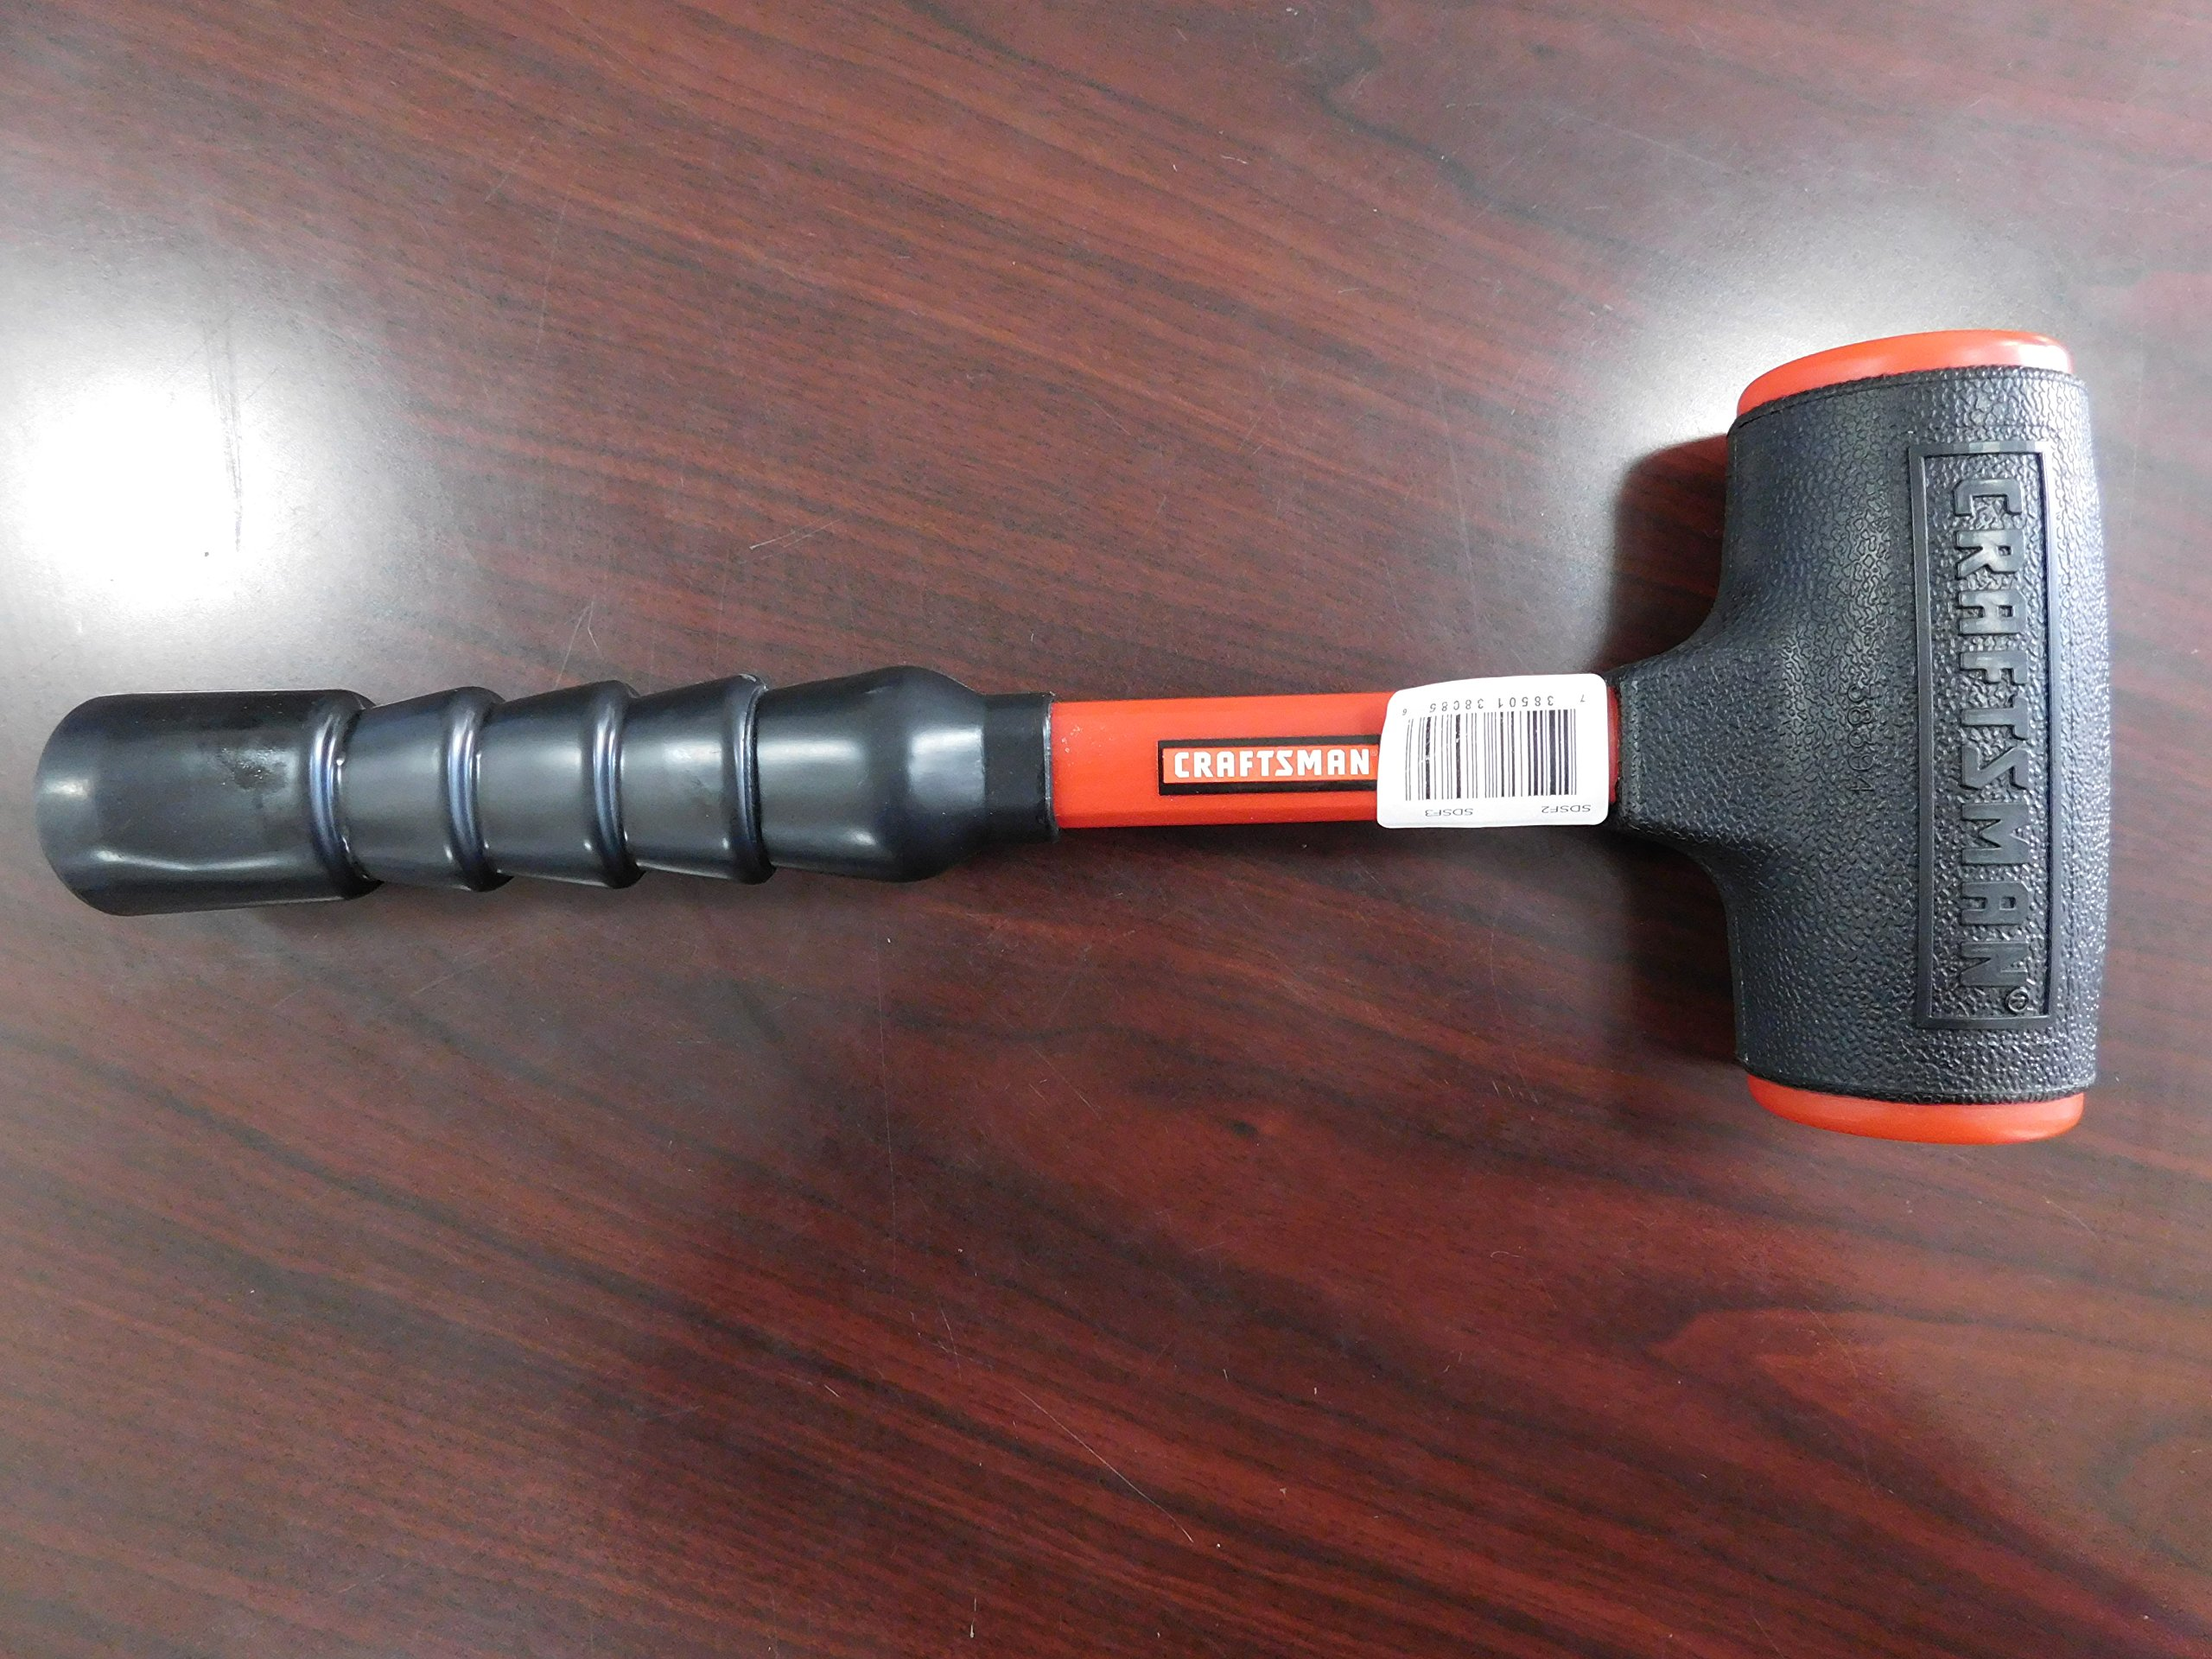 Craftsman 1-Pound Urethane Faced Dead Blow Hammer, Made in USA, Vintage/Rare, Part #938359 by Craftsman (Image #1)